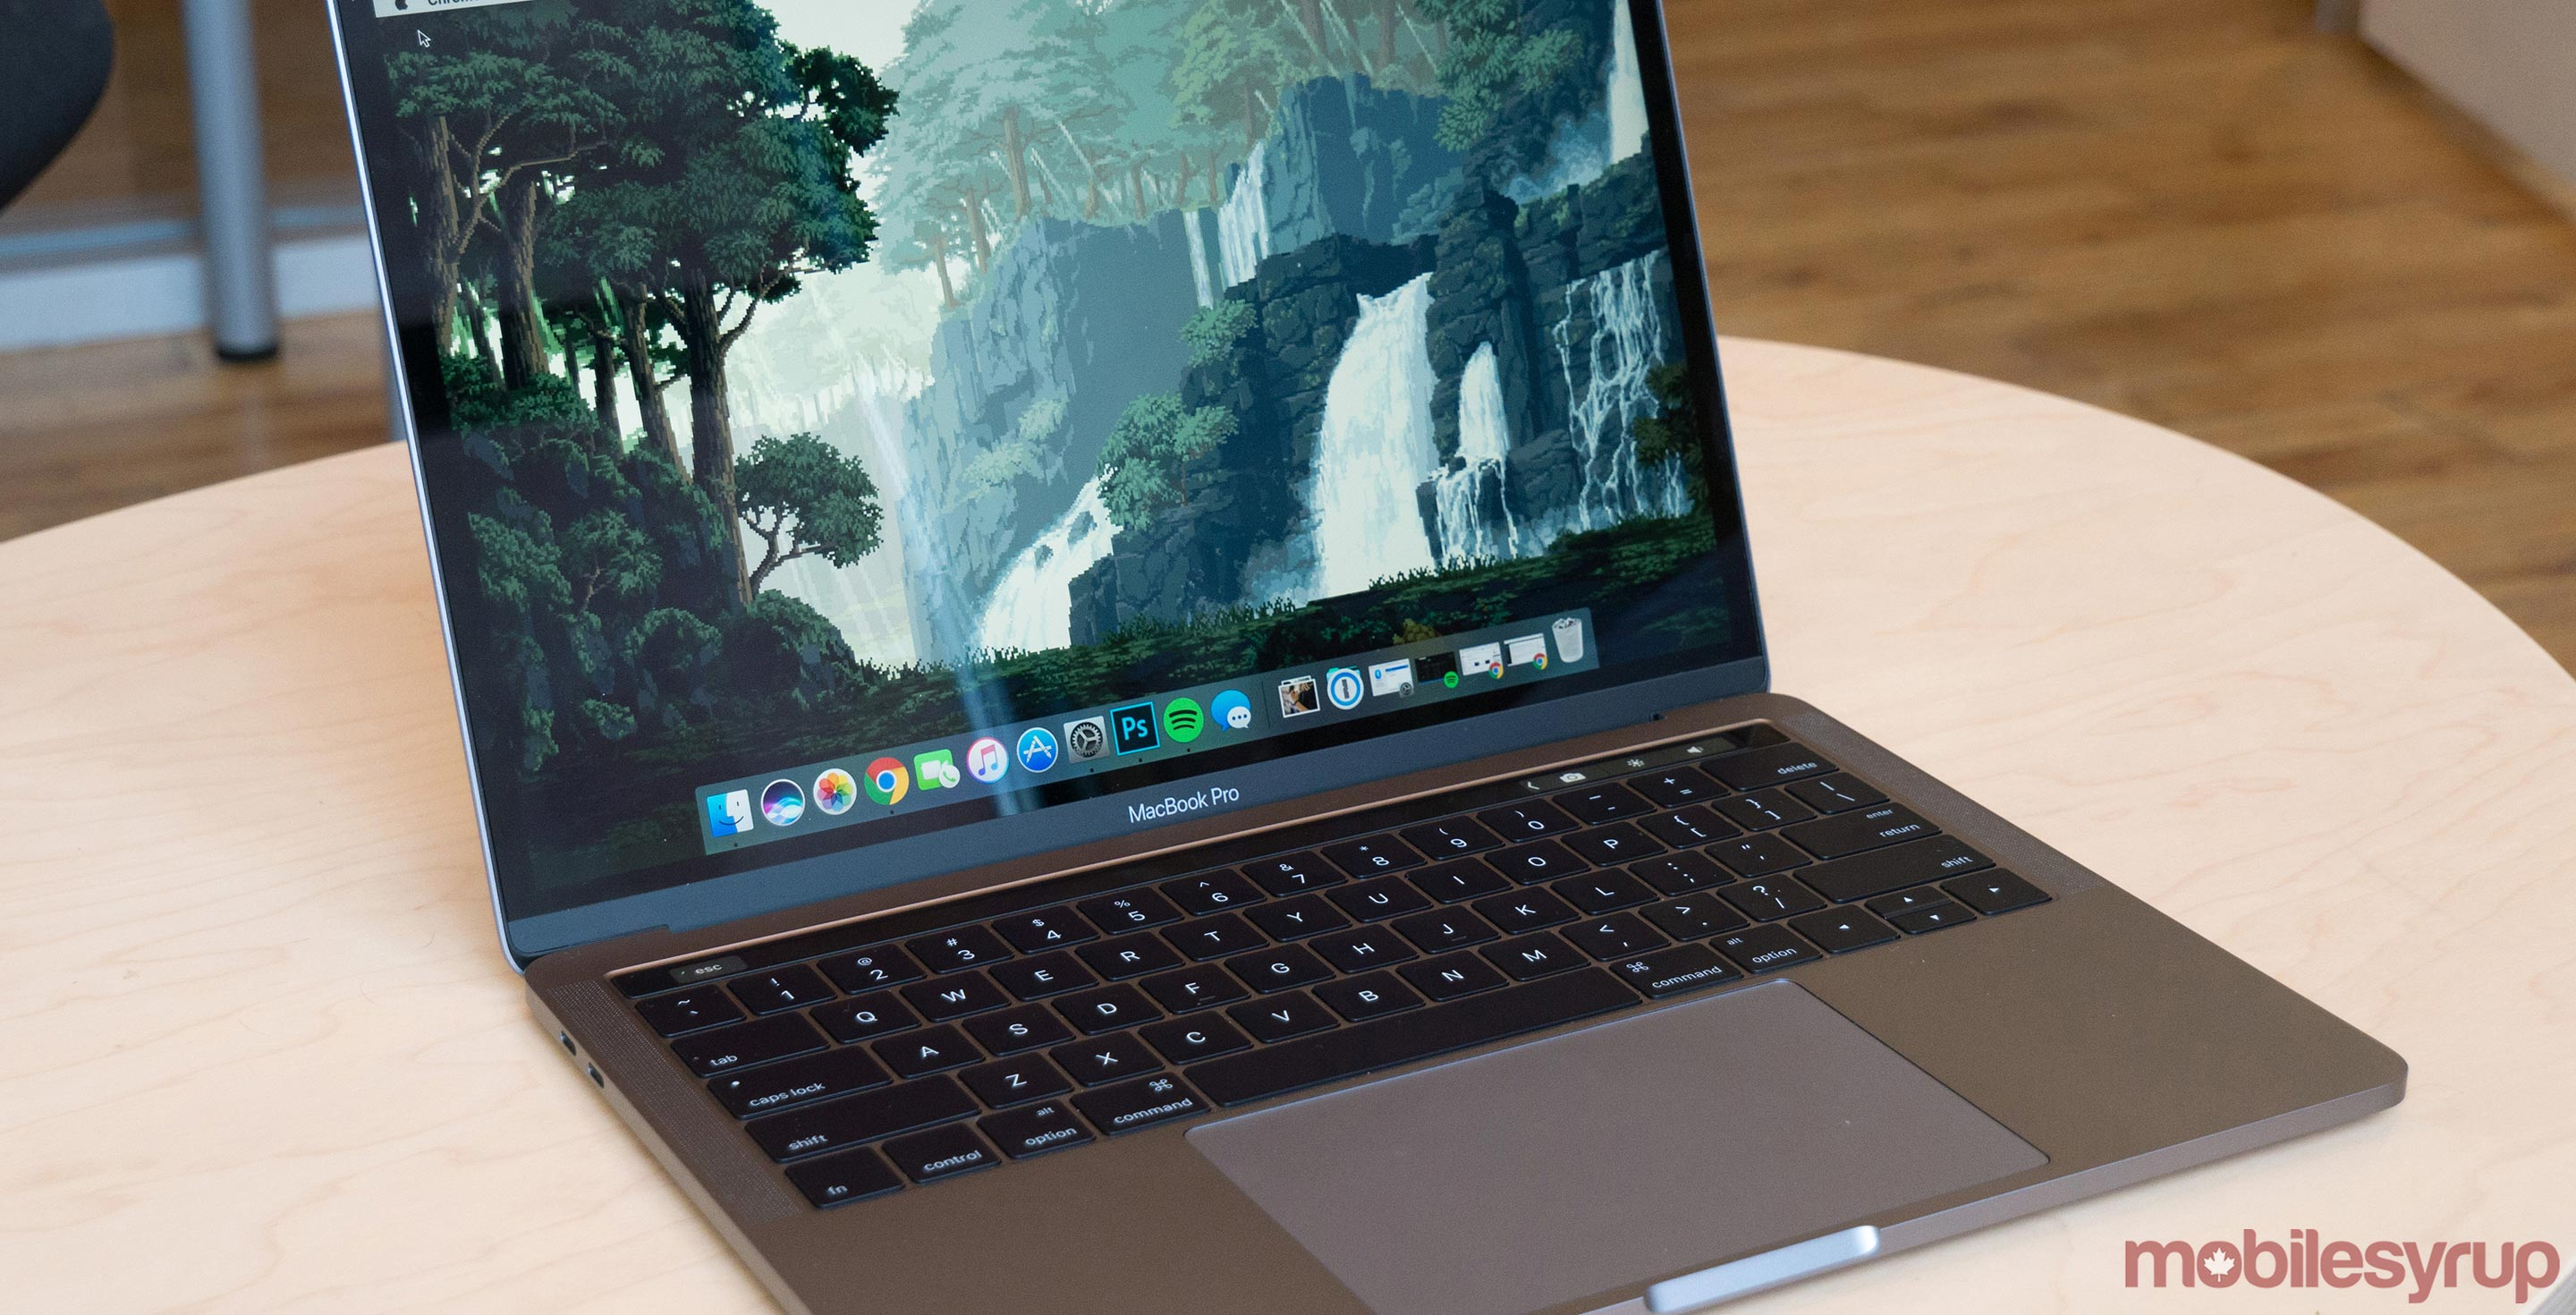 2016 MacBook Pro with Touch Bar review: The future creates difficulties in the present